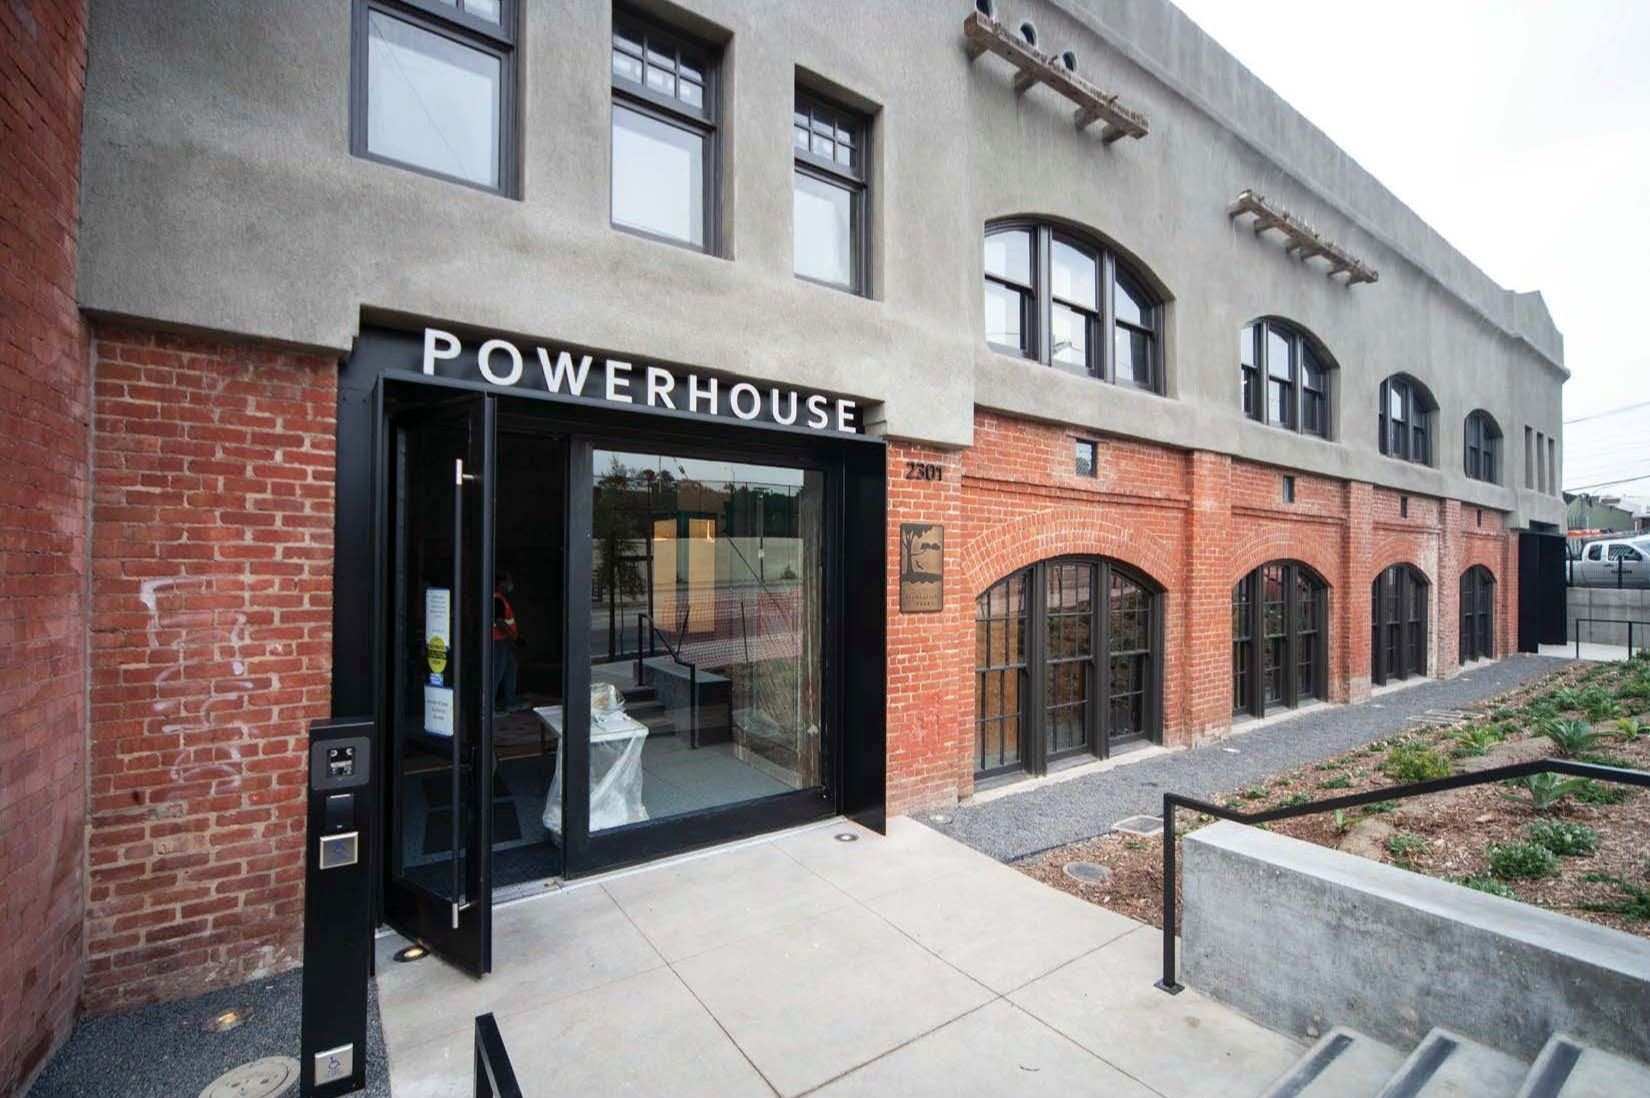 Image shows Geneva Car Barn Front elevation close up of main entrance with Powerhouse in white lette